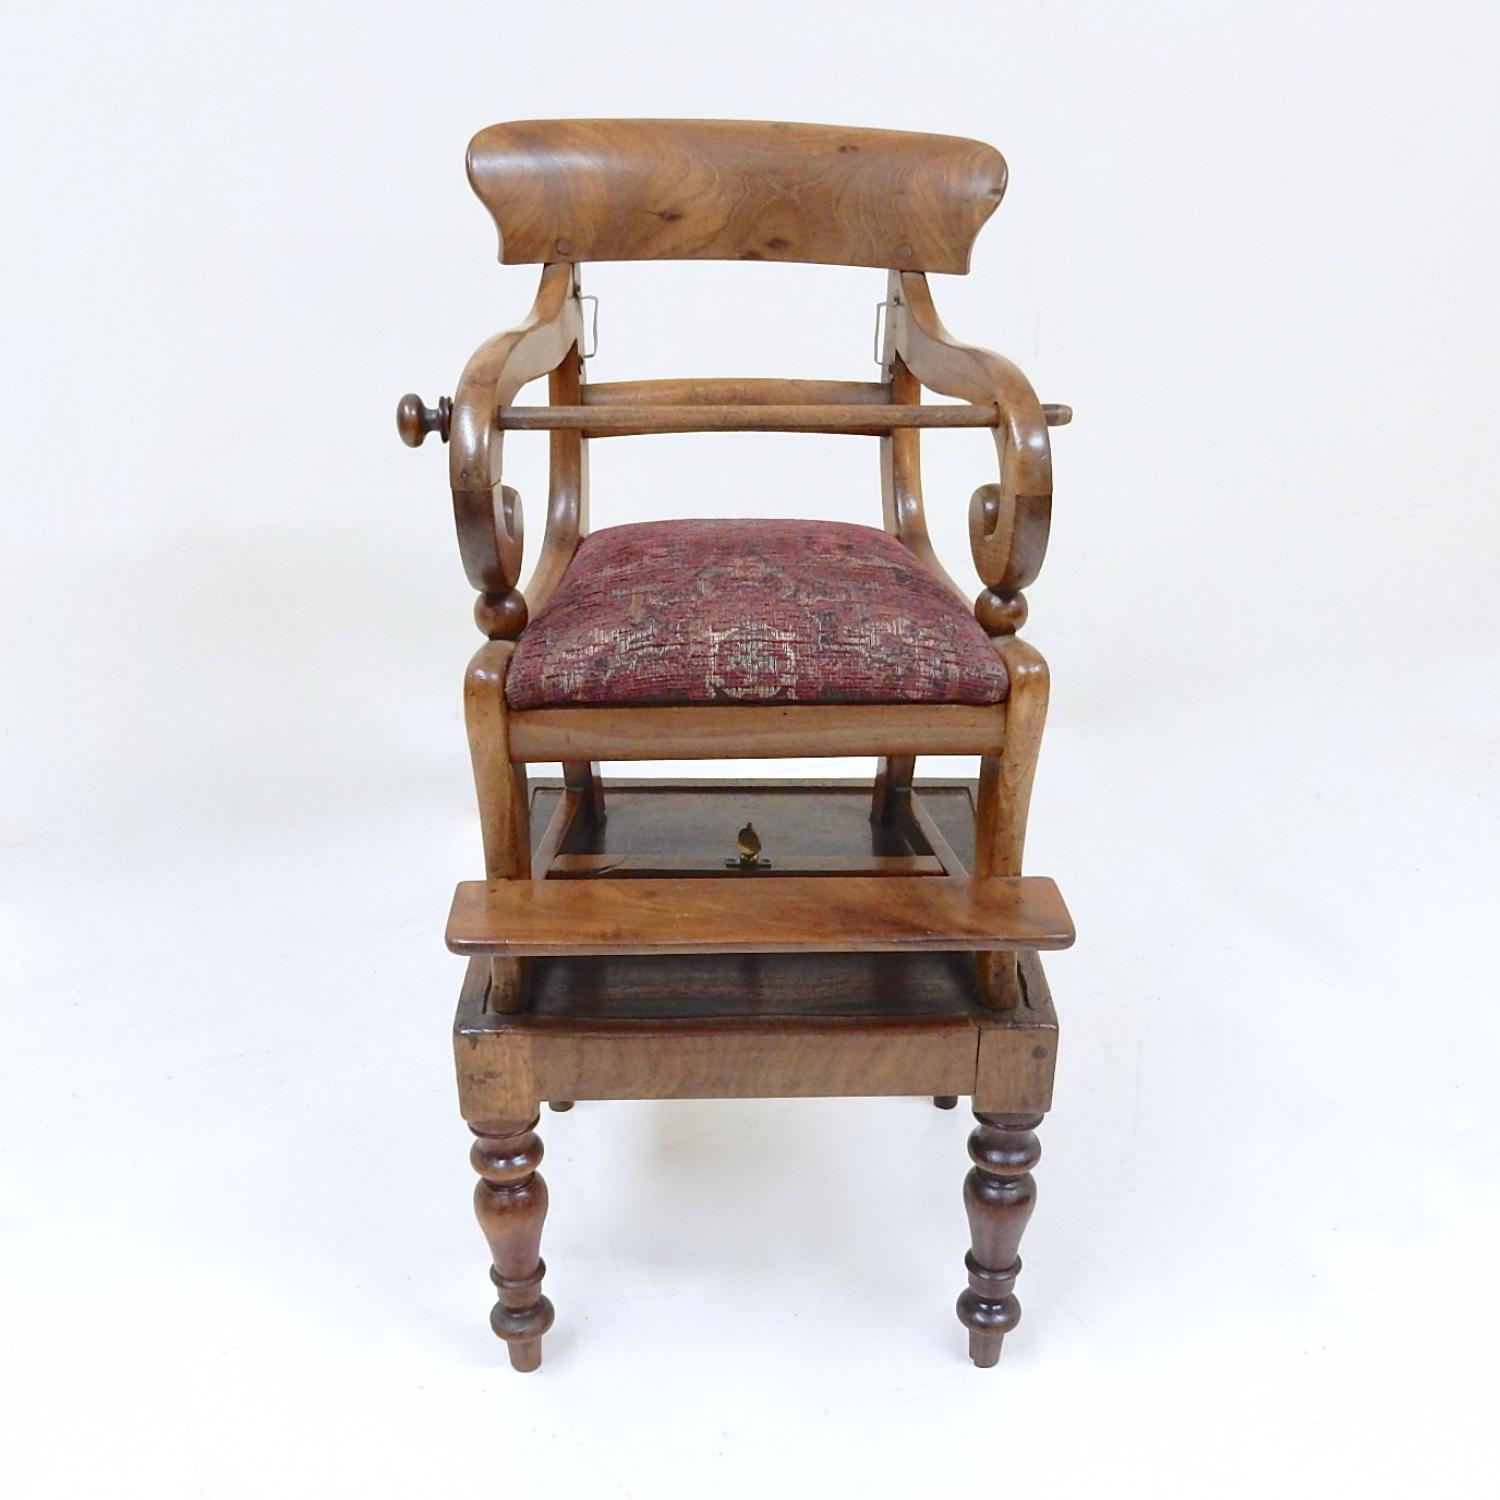 Antique Metamorphic Child's Chair